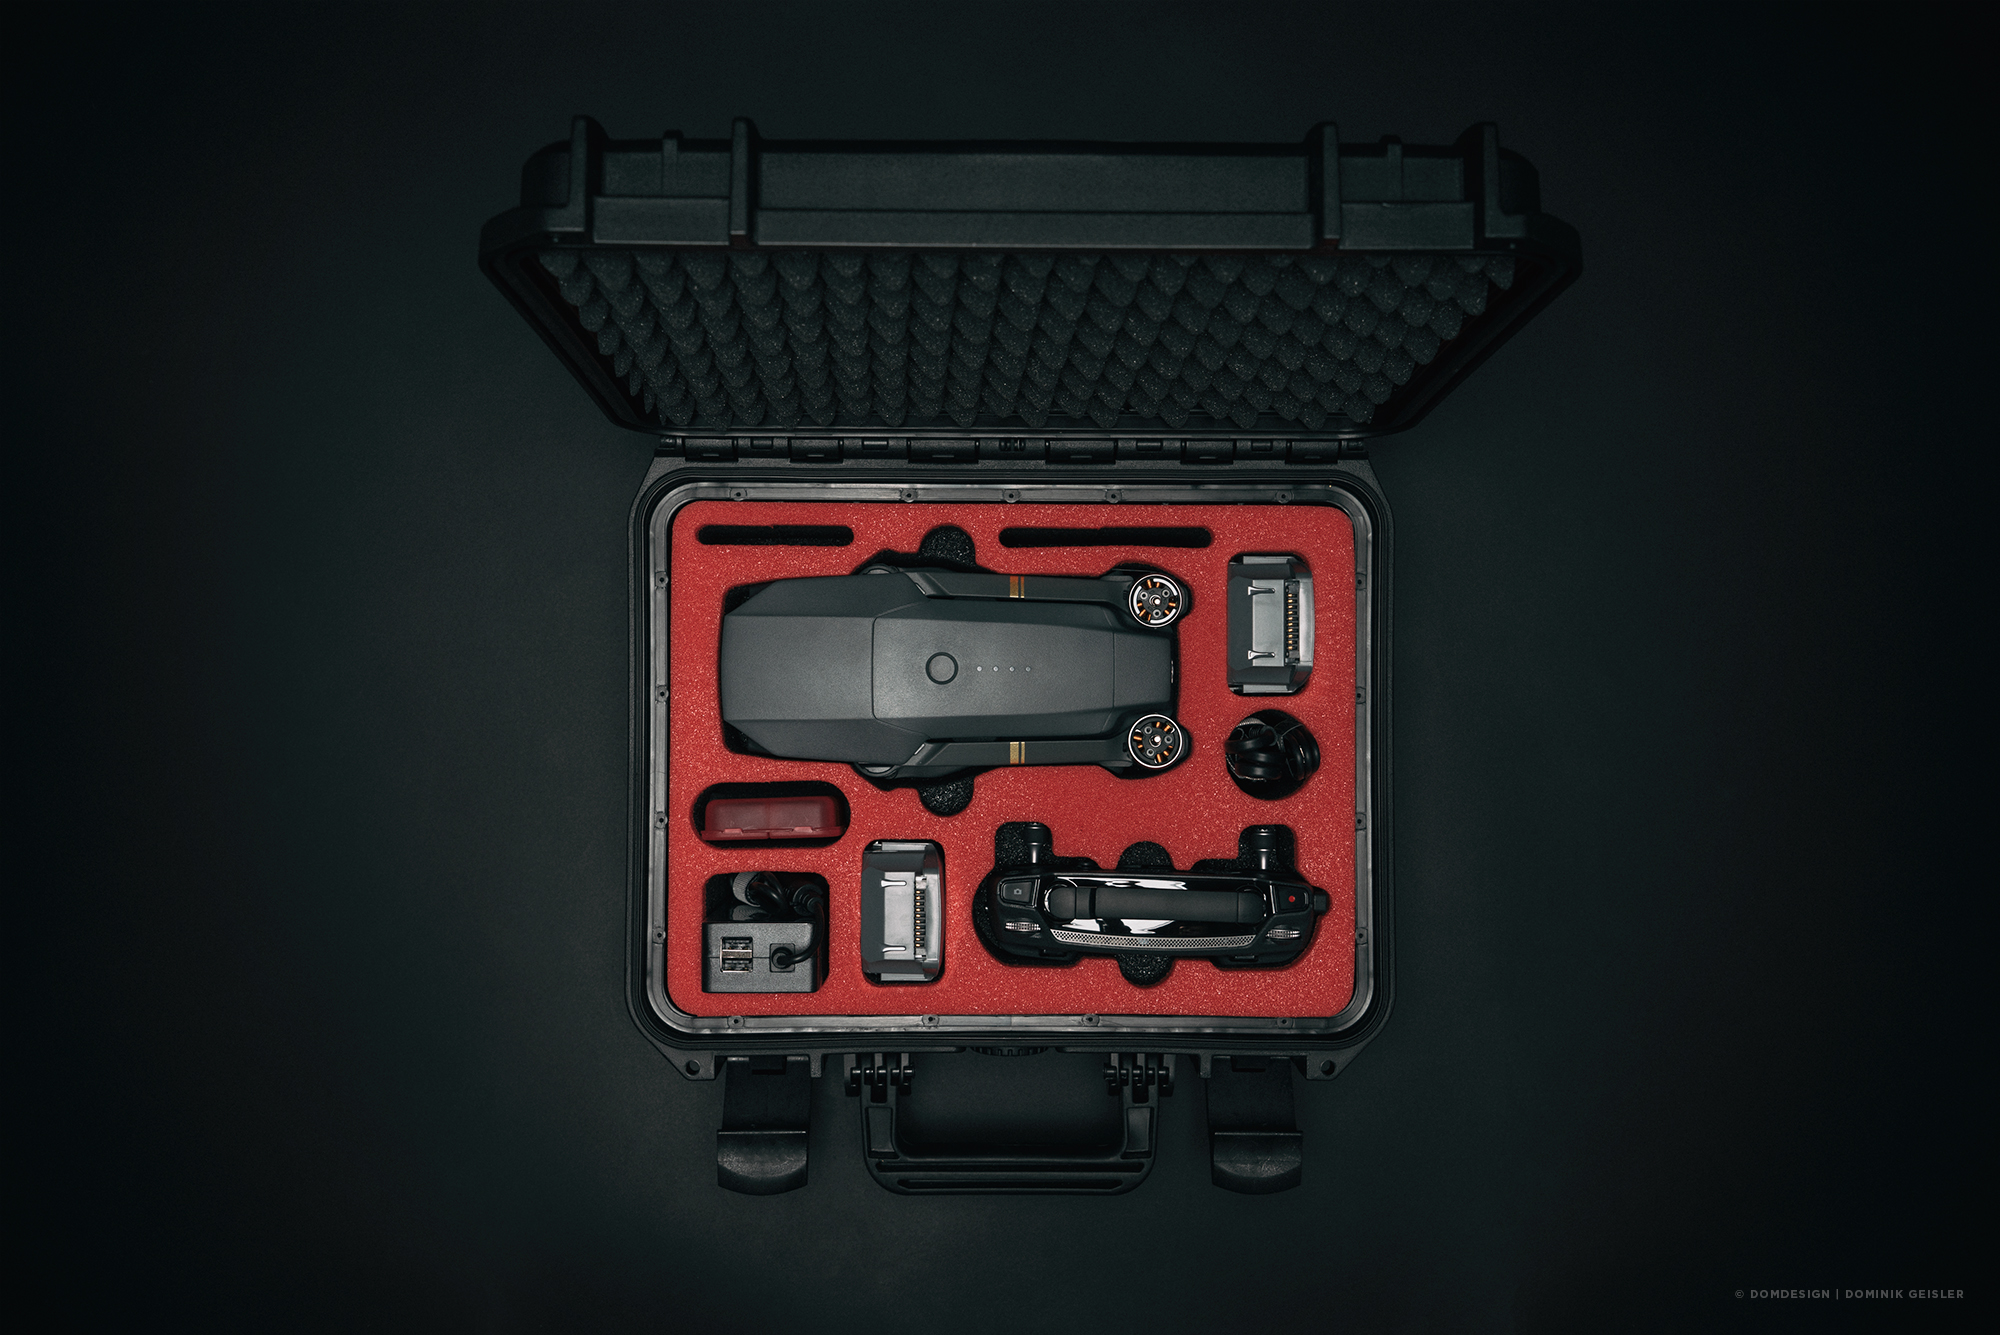 mc-case-dji-mavic-pro-by-domdesign-1